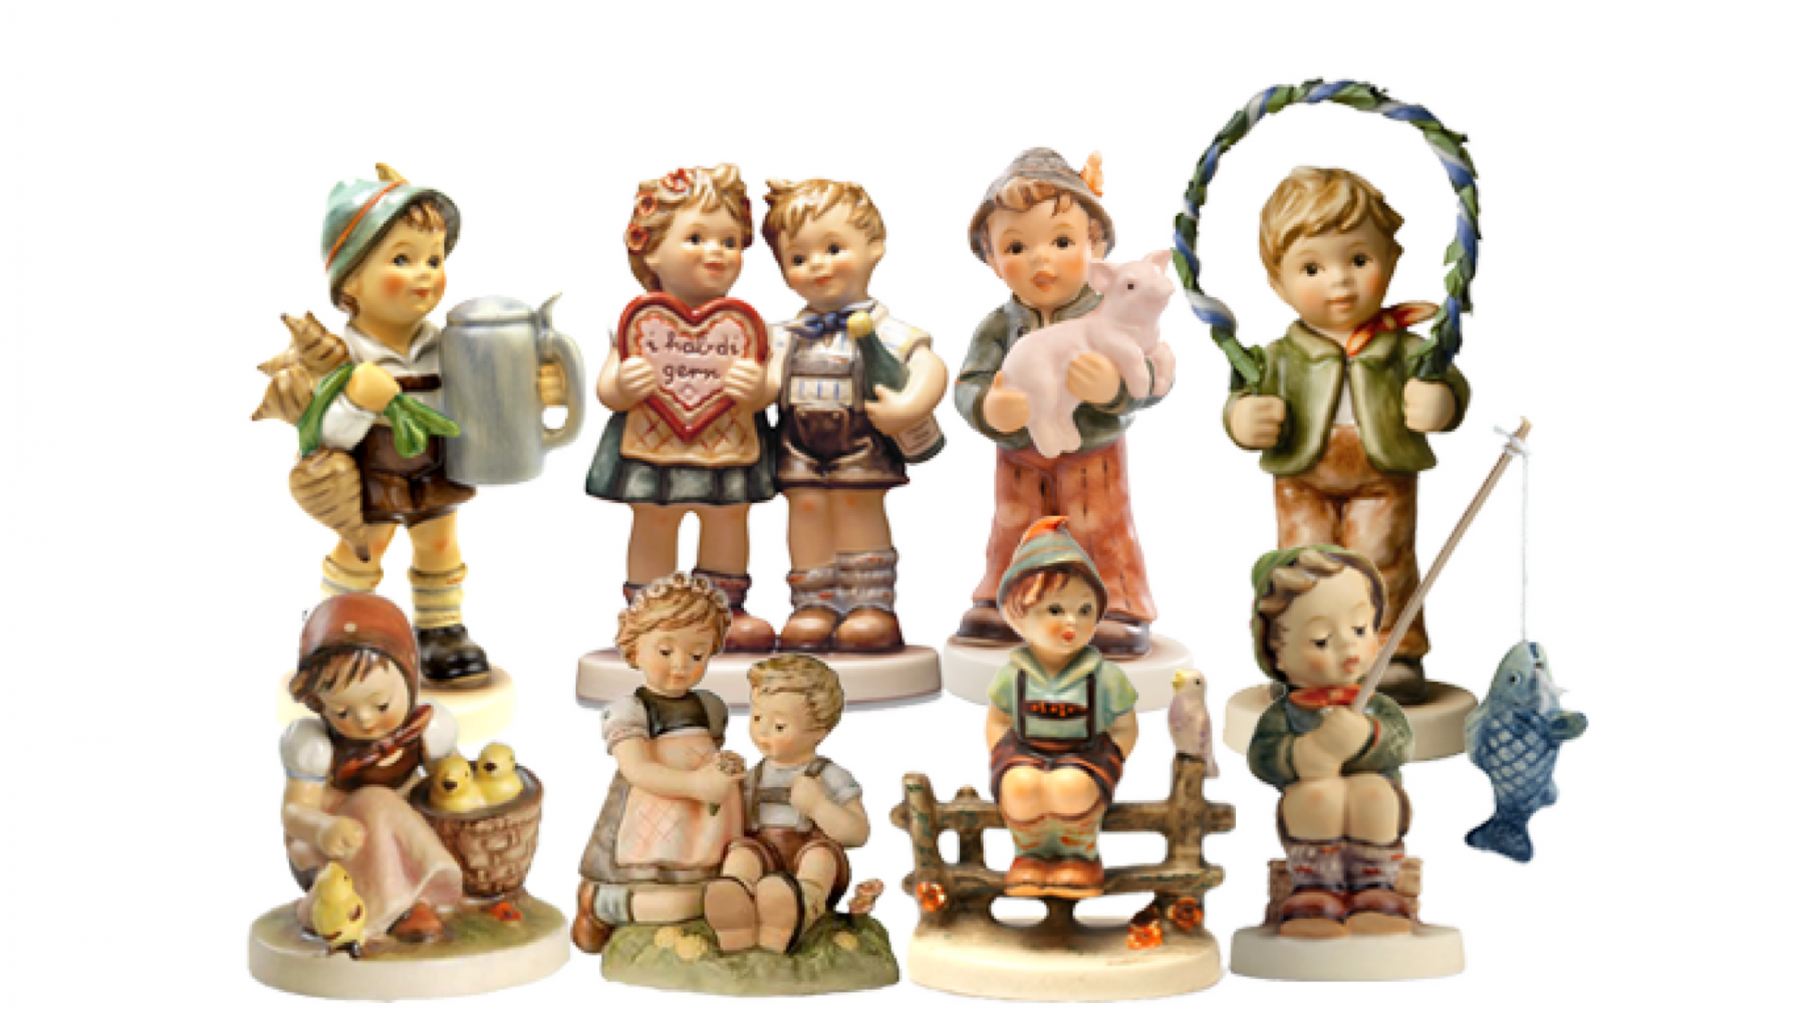 Hummel figurines from Germany